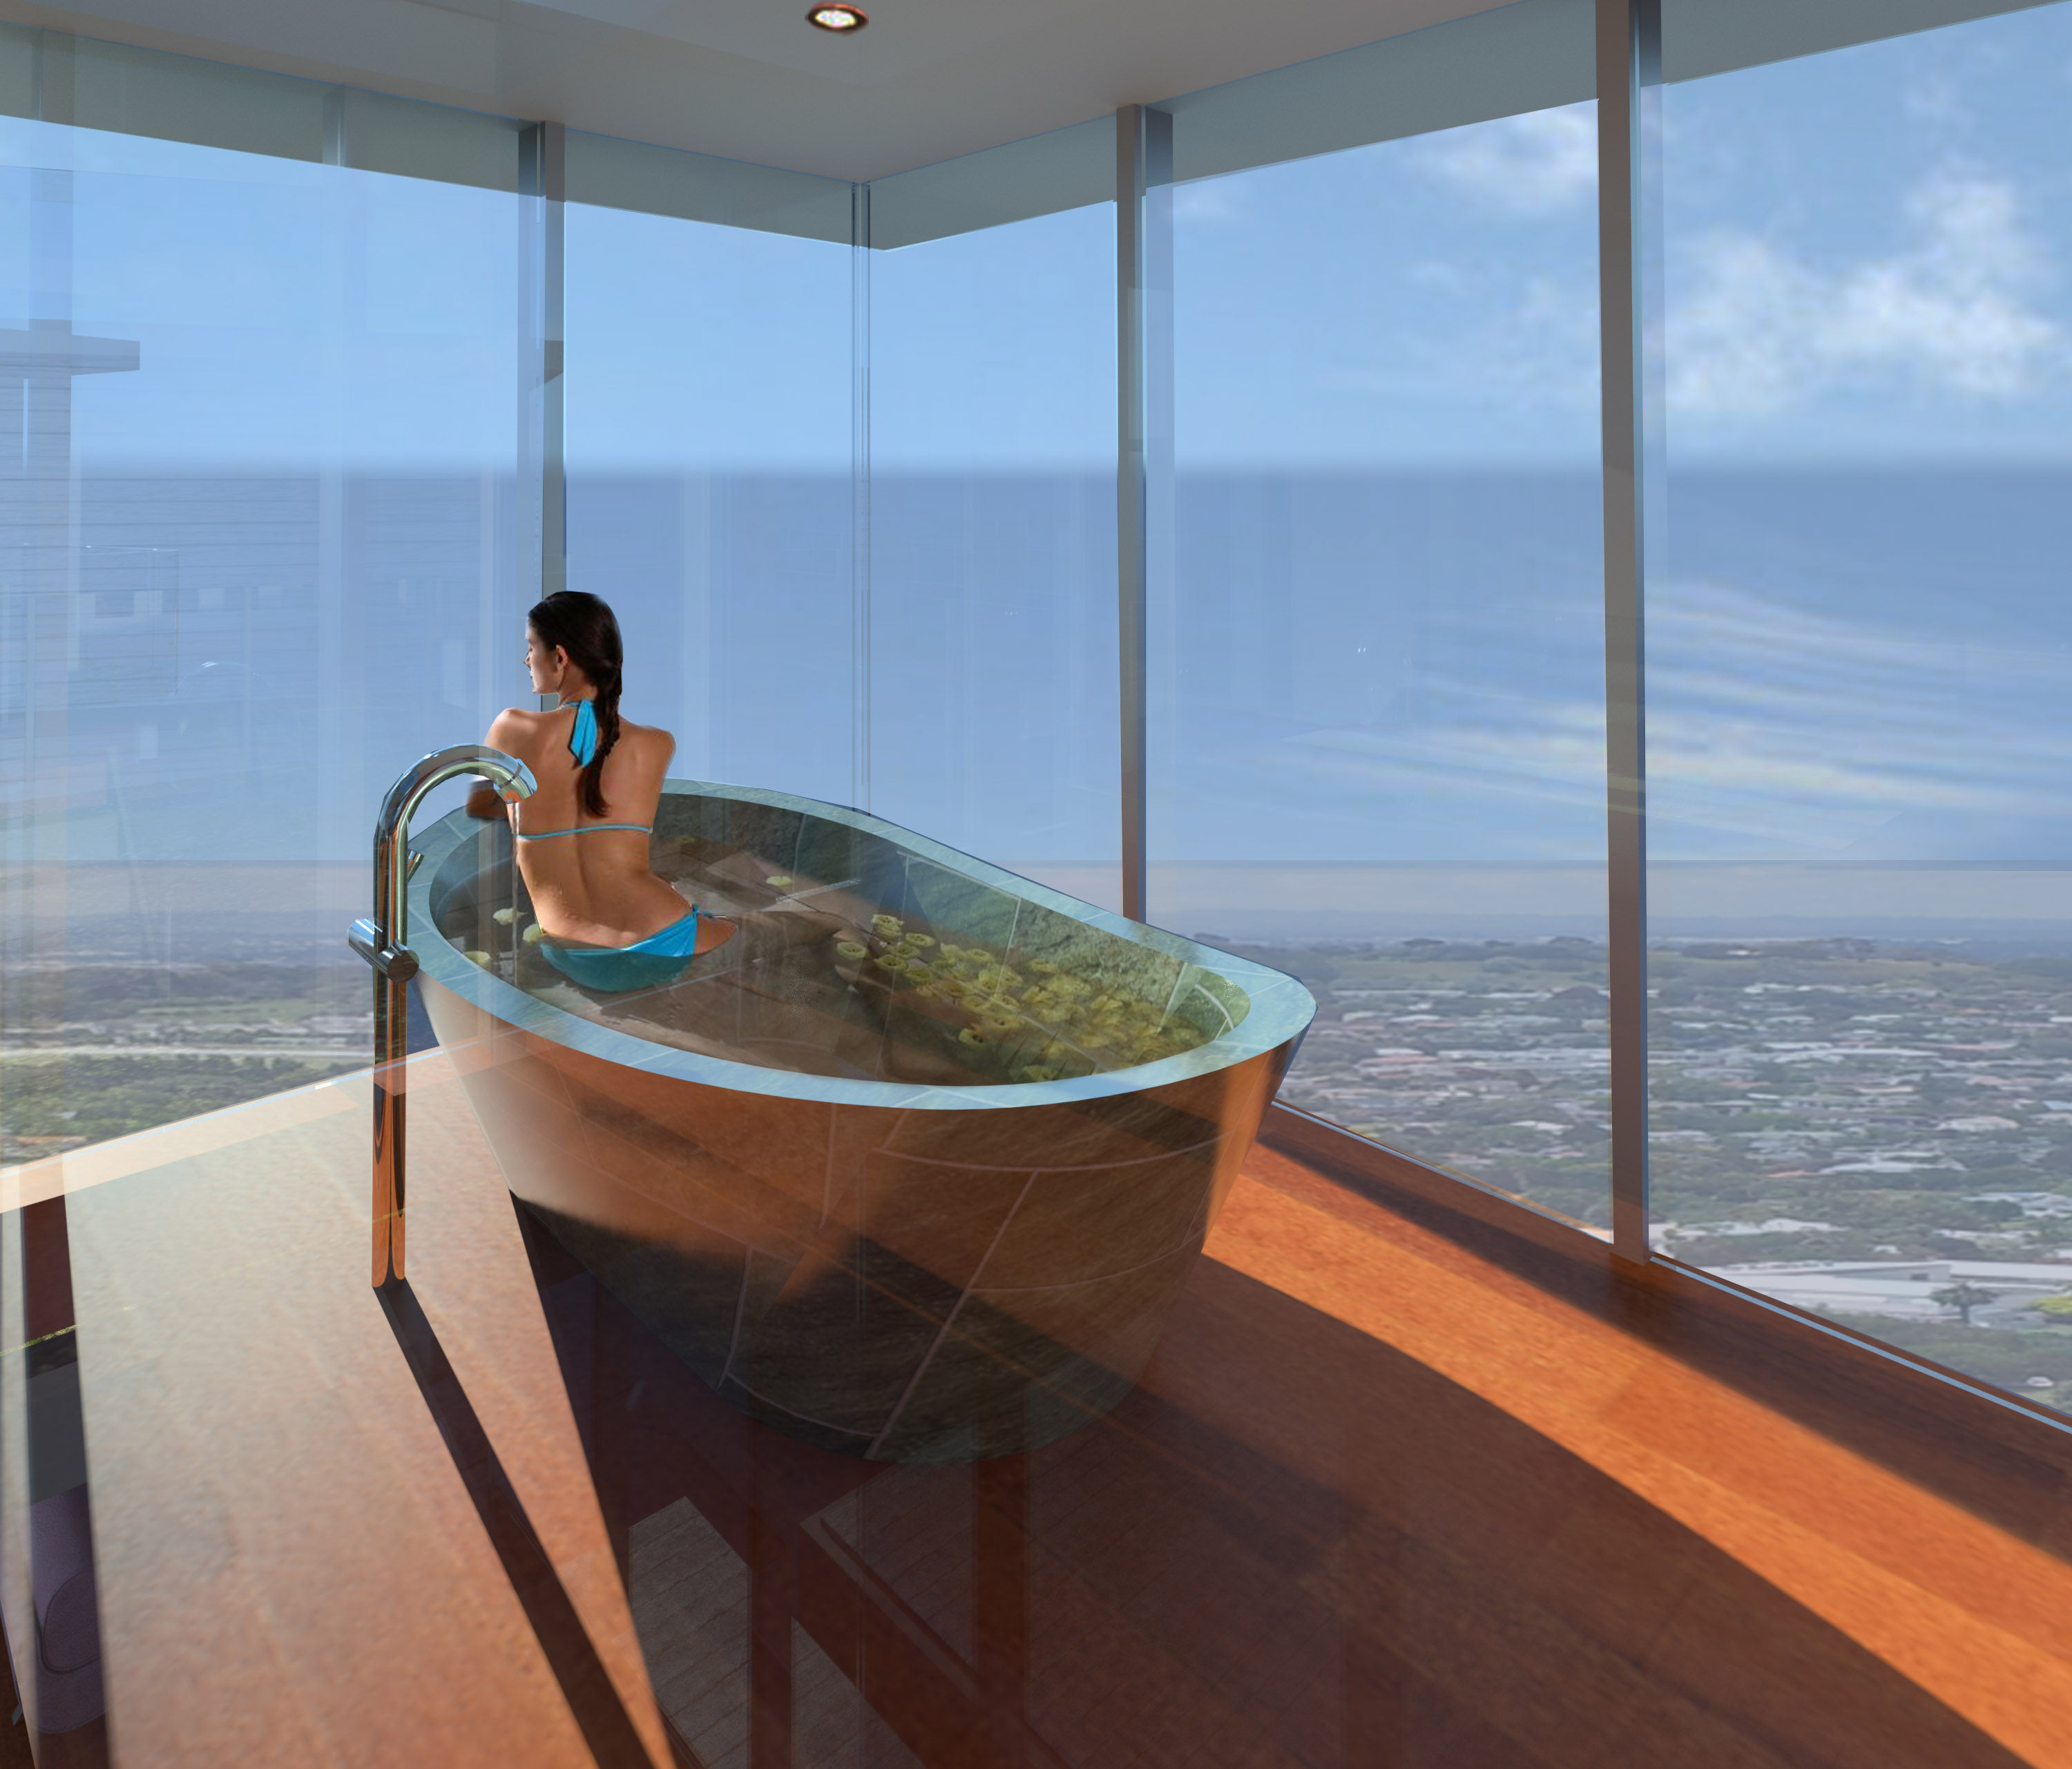 Interior-bath-tub-view-3500-3500